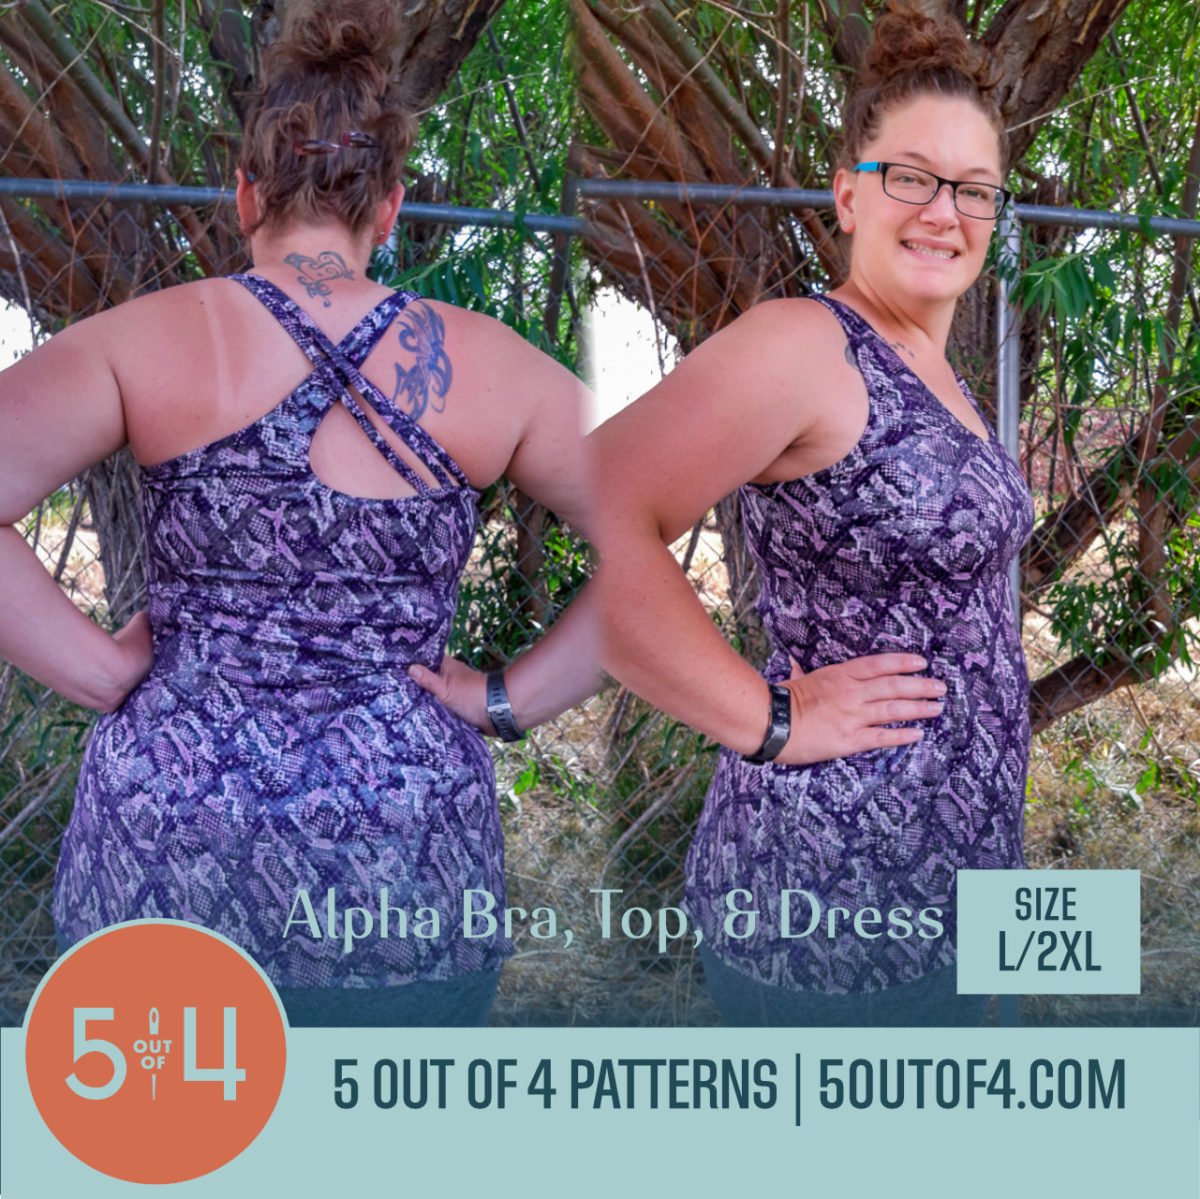 Alpha Bra, Top, & Dress L:2XL